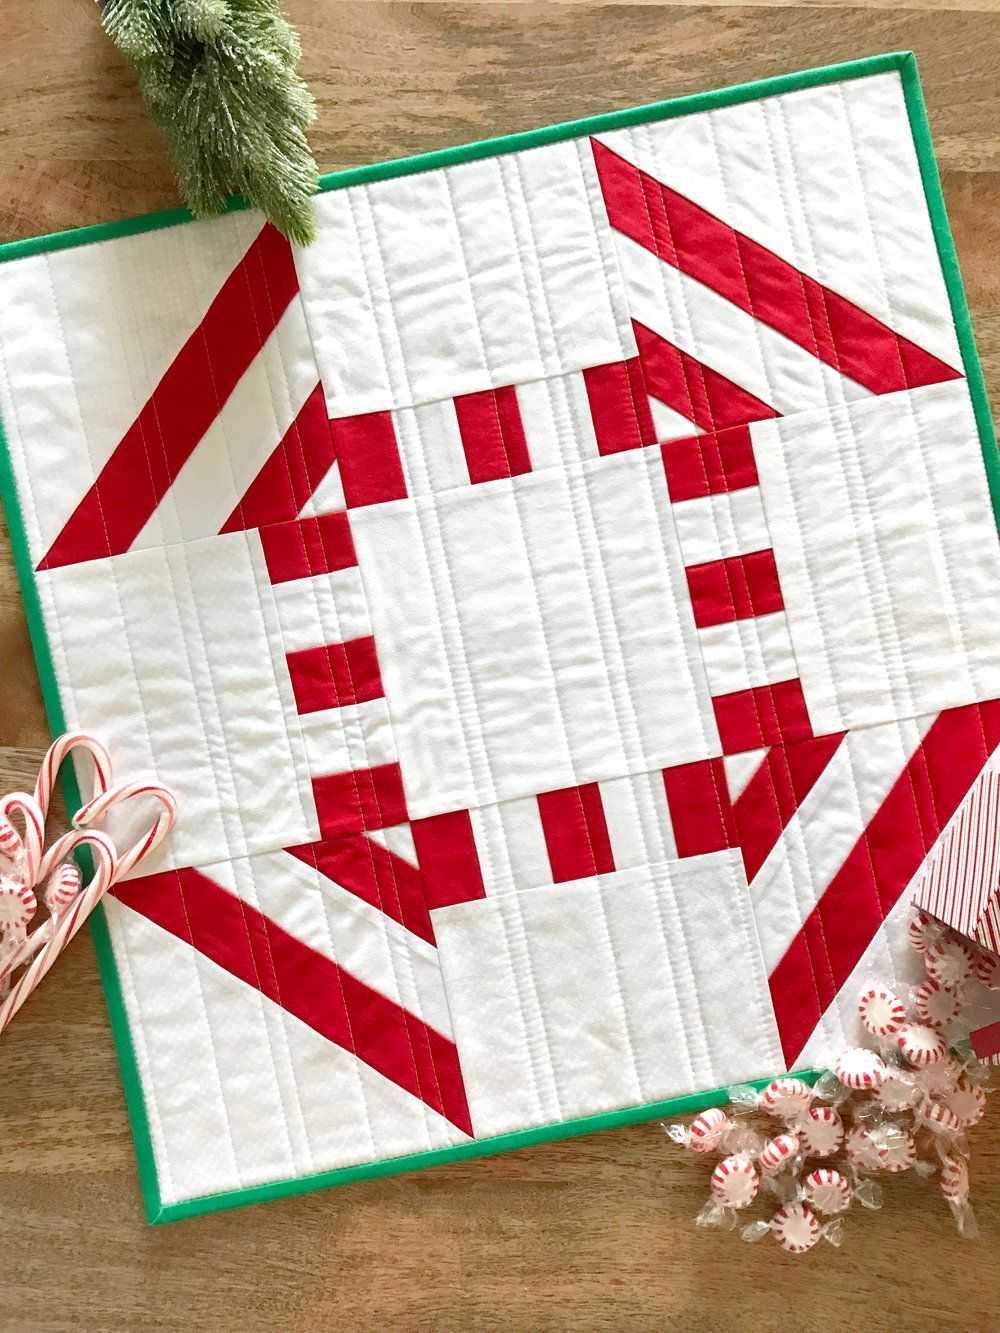 Monthly mini quilt for december peppermint mini quilts monthly mini quilt for december peppermint jeuxipadfo Gallery